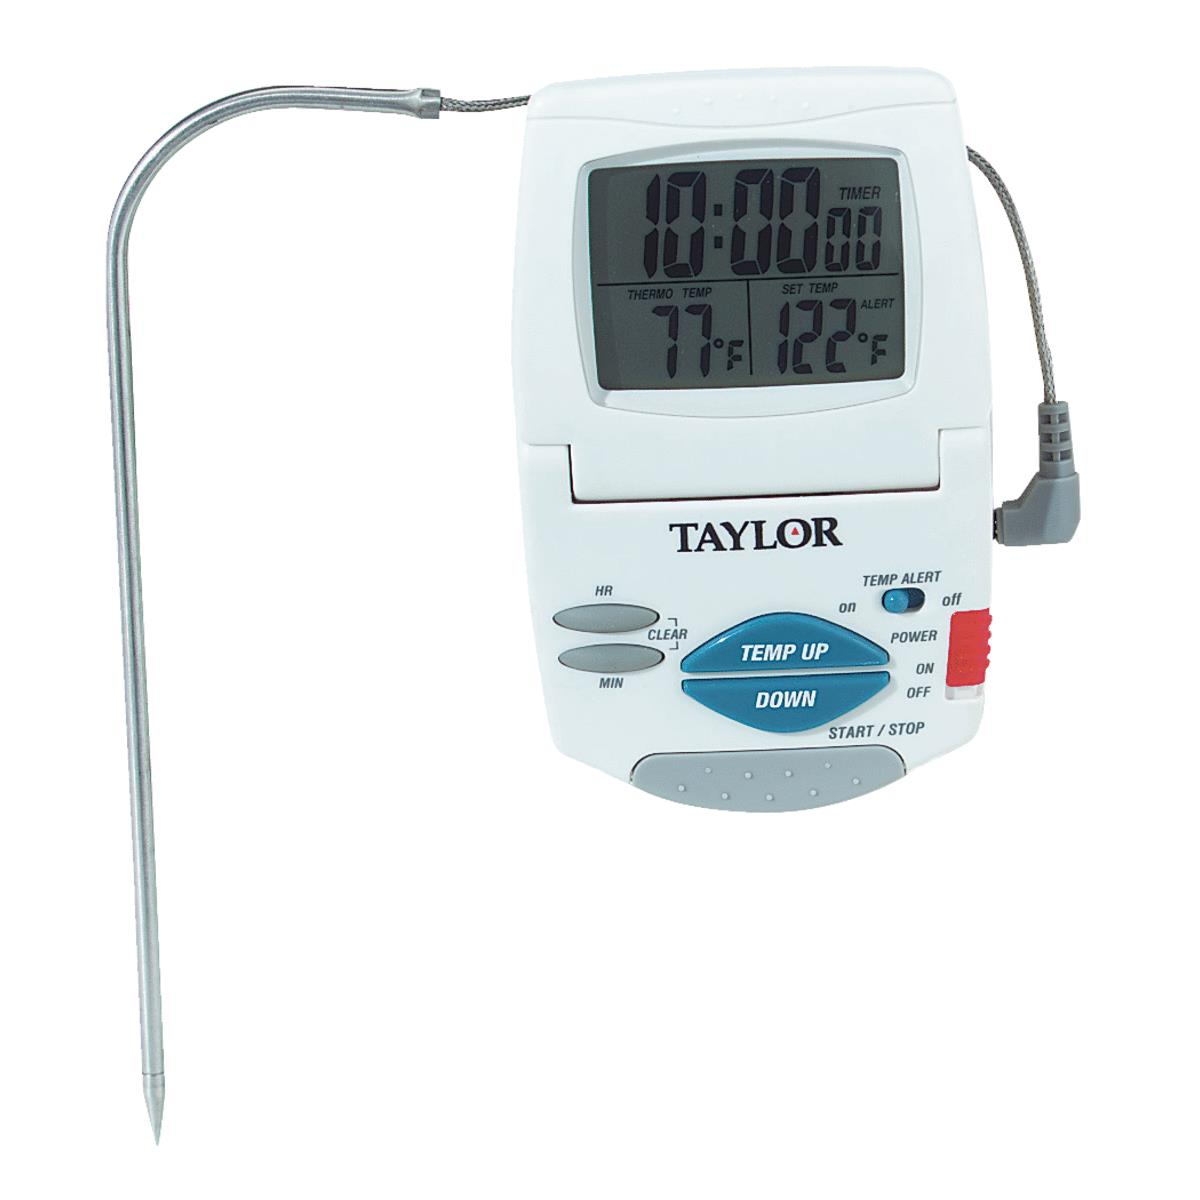 Taylor Digital Oven Kitchen Thermometer